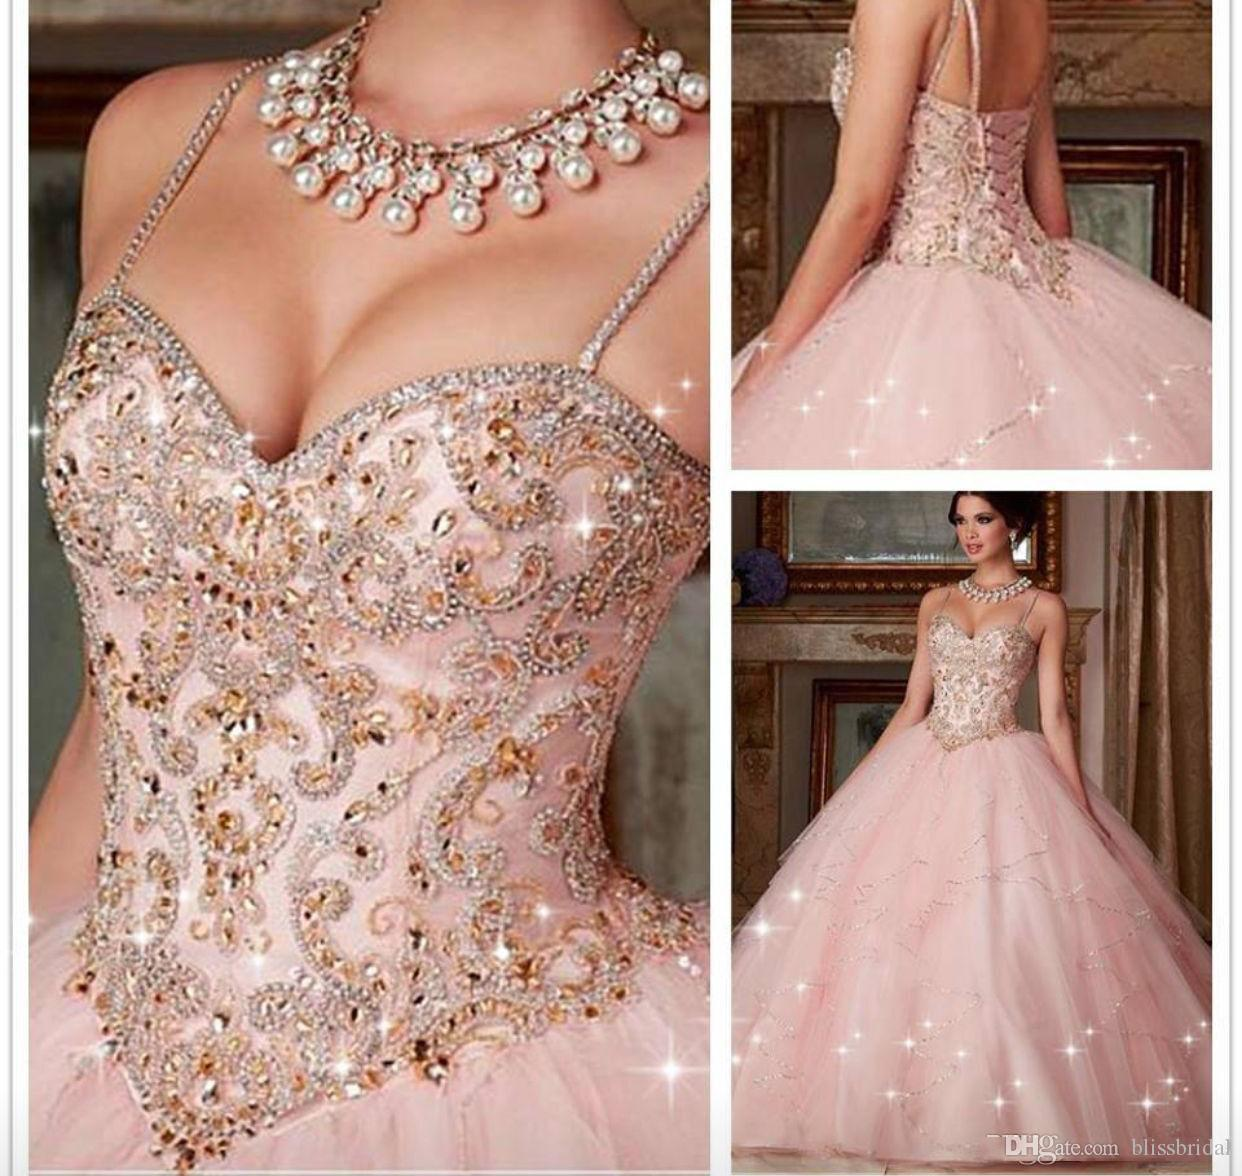 Custom Made New Quinceanera Dress 2020 New Pink Crystal Ball Gown Dresses For Sweet 16 Years Prom Party Dress Yong Girls Prom Dresses